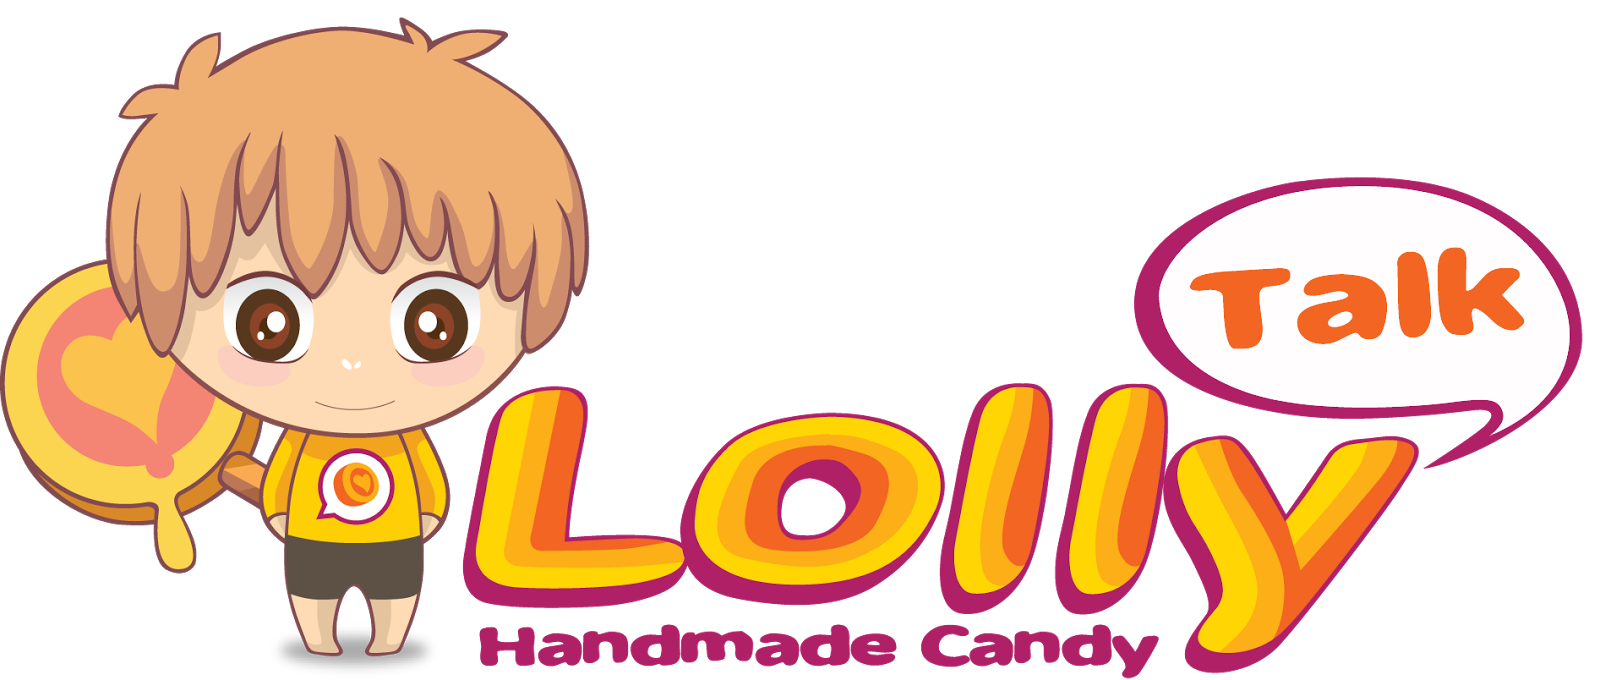 LollyTalk Handmade Candy